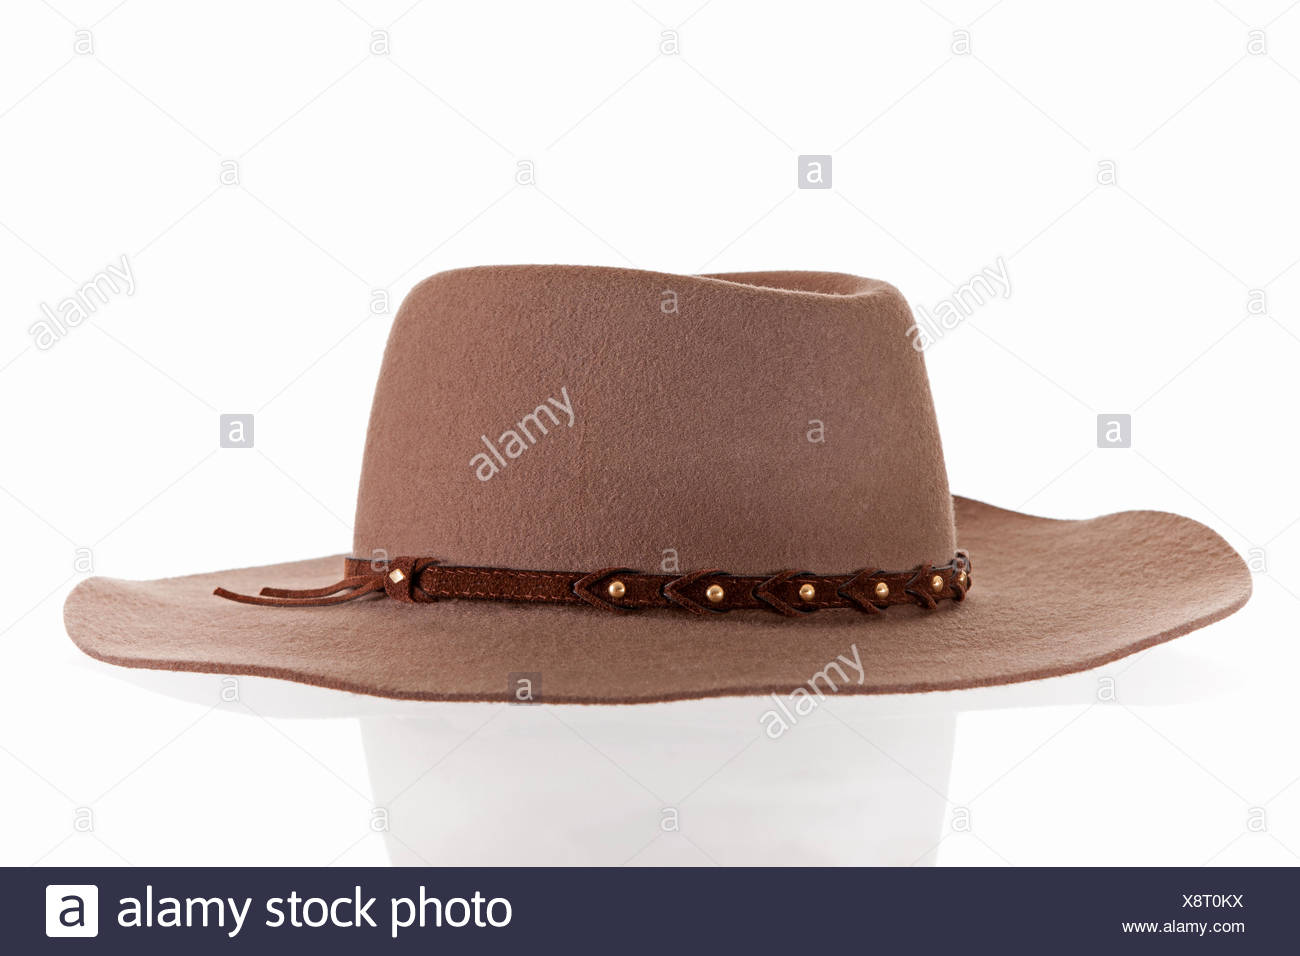 473d8a12 Outback Hat Stock Photos & Outback Hat Stock Images - Alamy